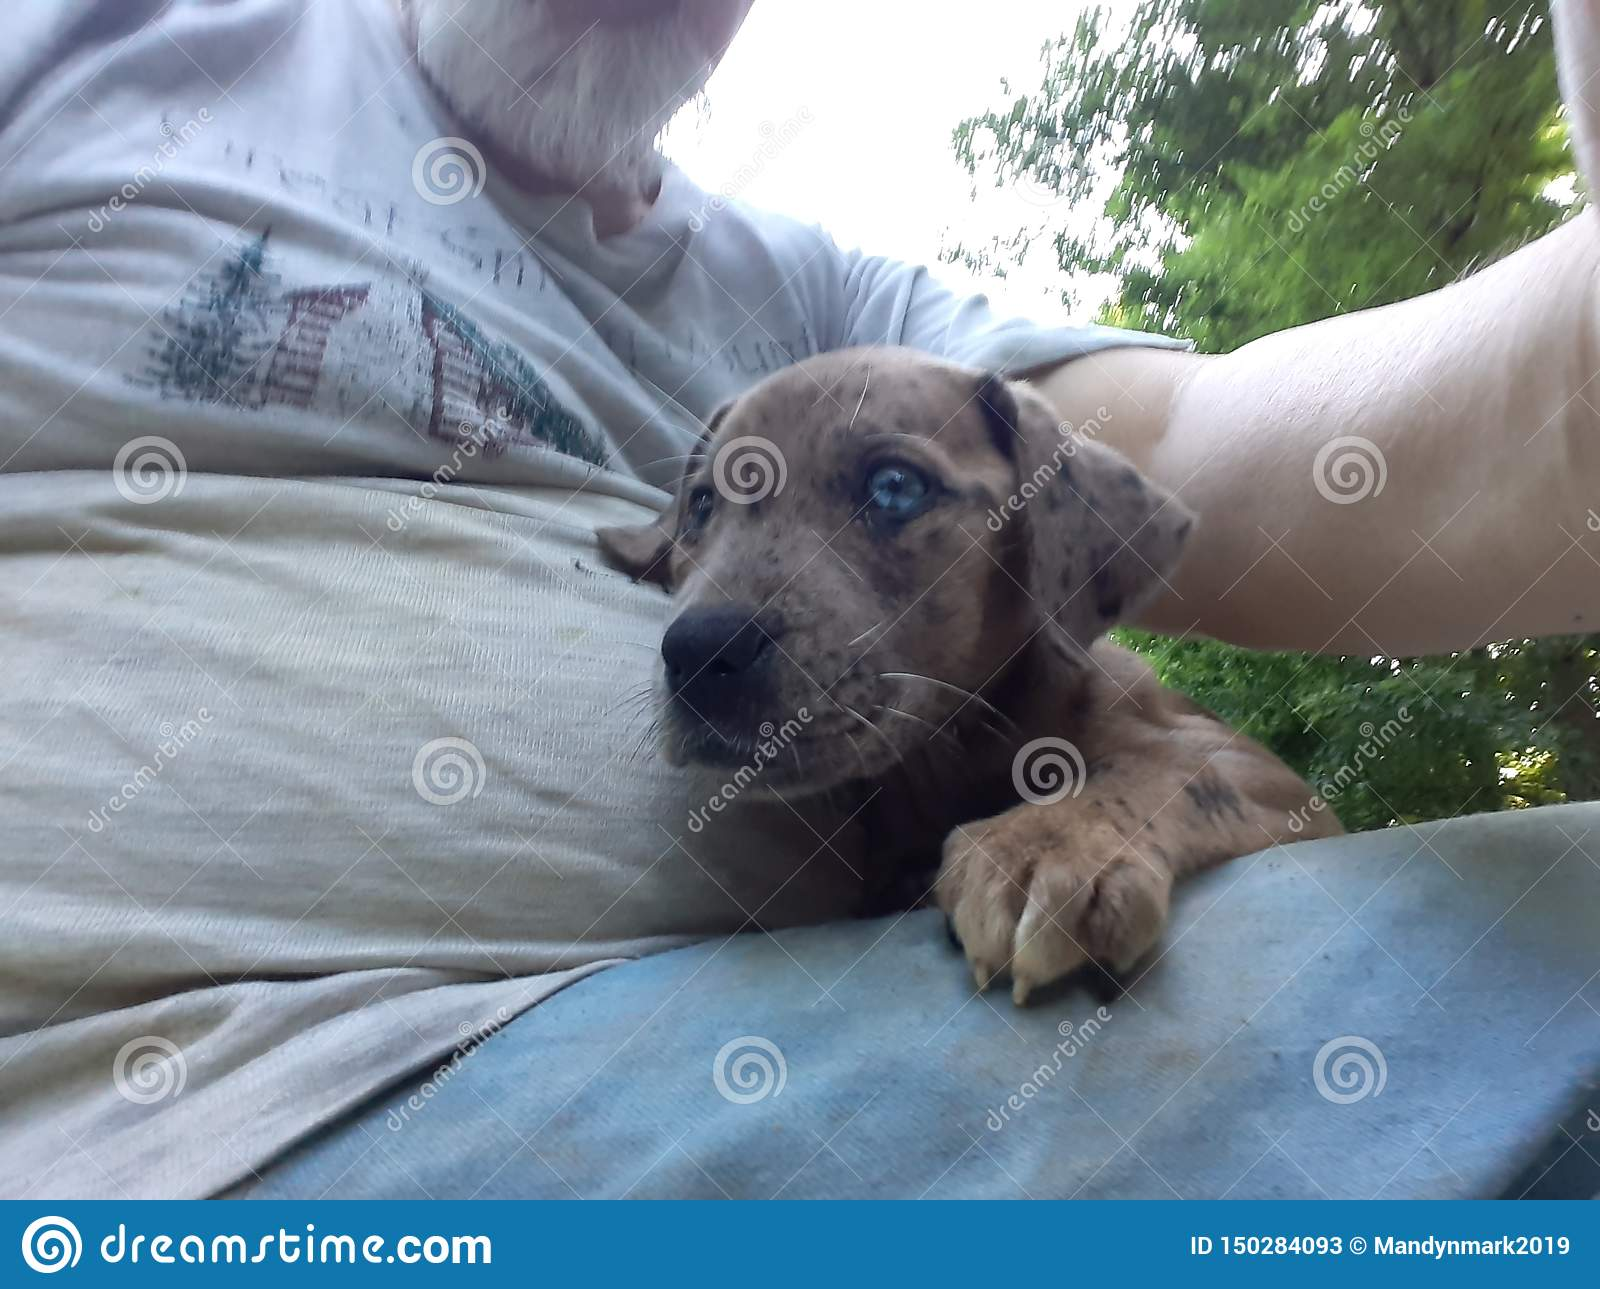 Cute Blue Eyed Puppy With A Cross In Her Eye Stock Image Image Of Puppy Eyed 150284093